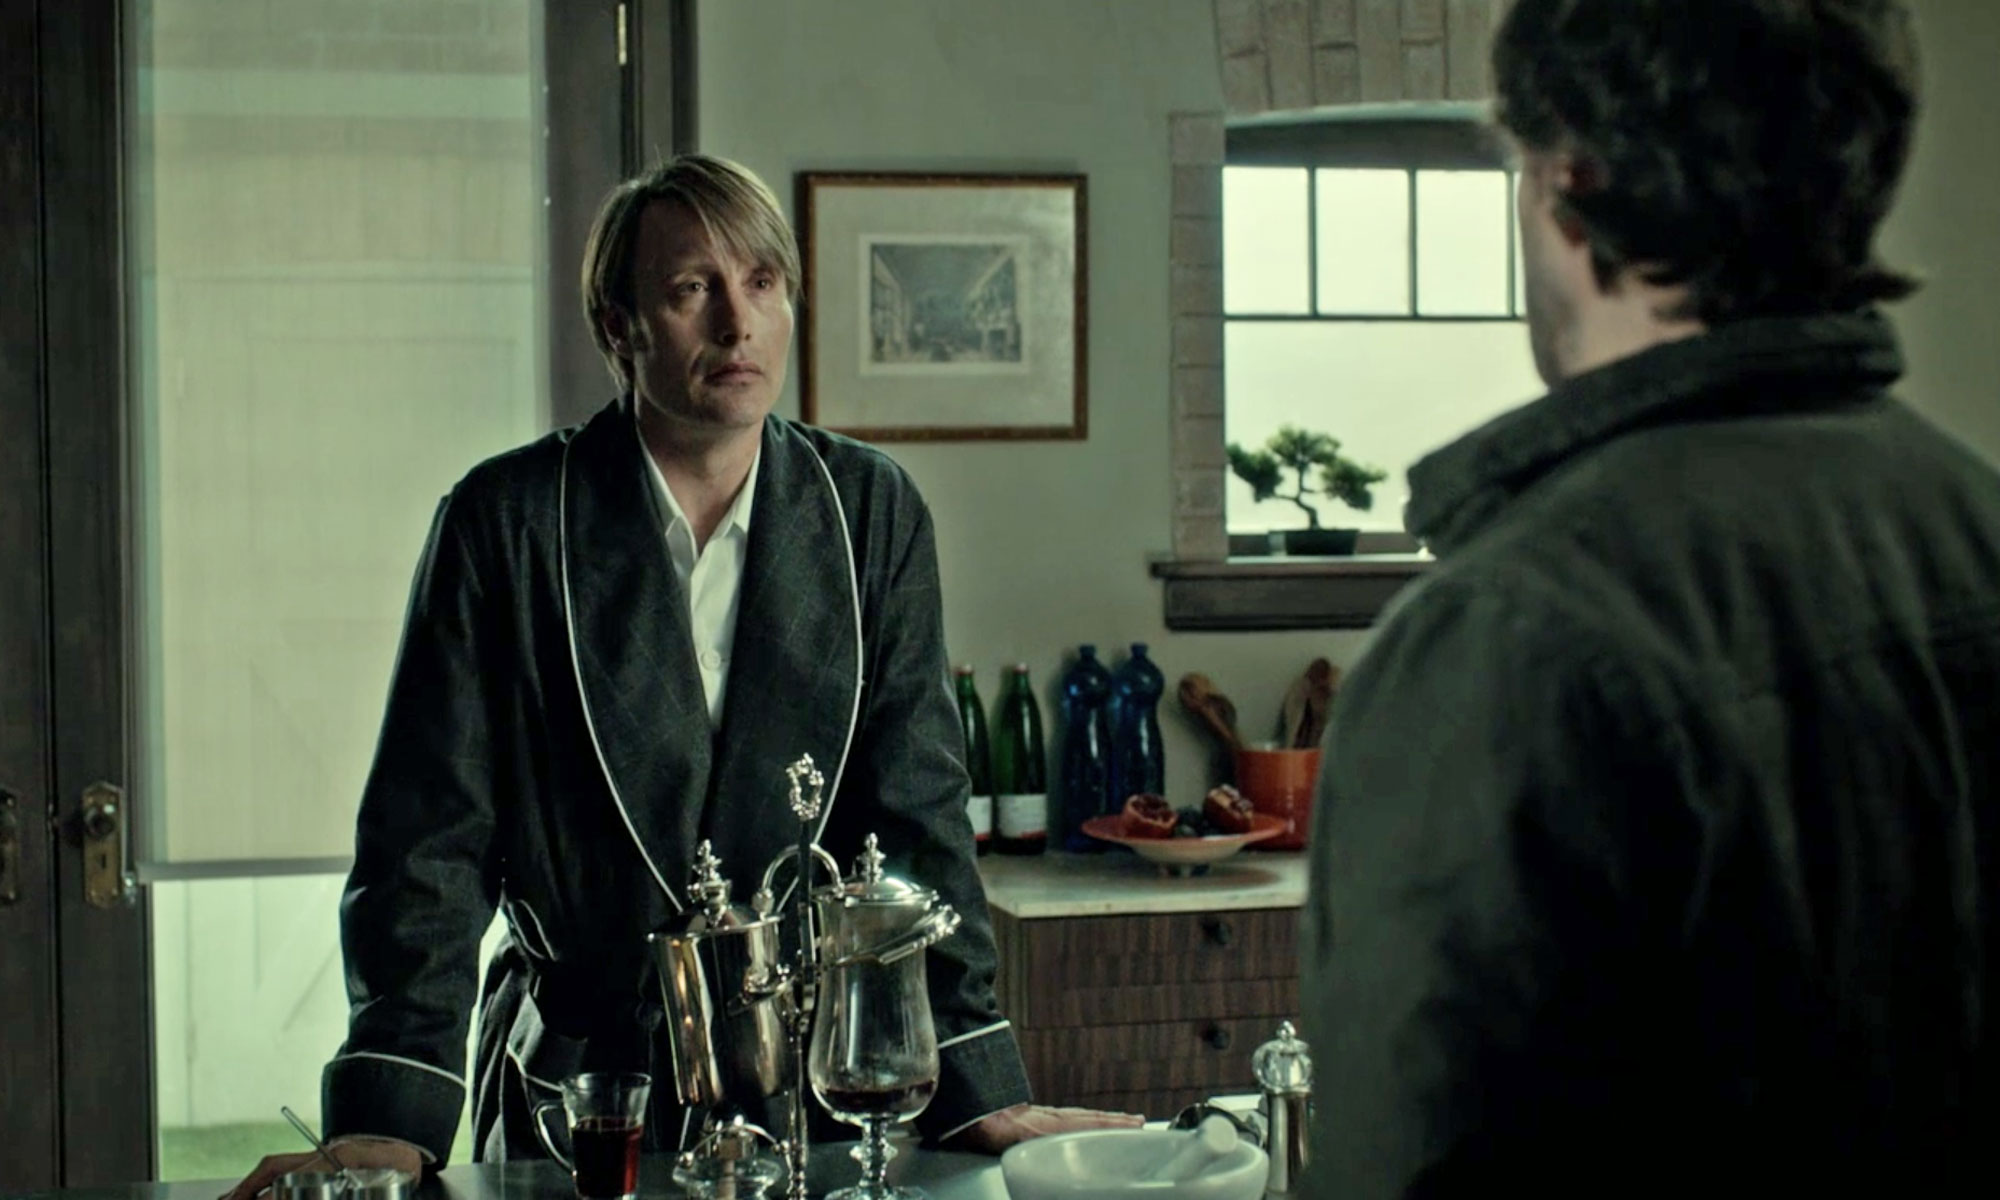 Christopher Hargadon costumes worn by Mads Mikkelsen wearing a robe in Hannibal